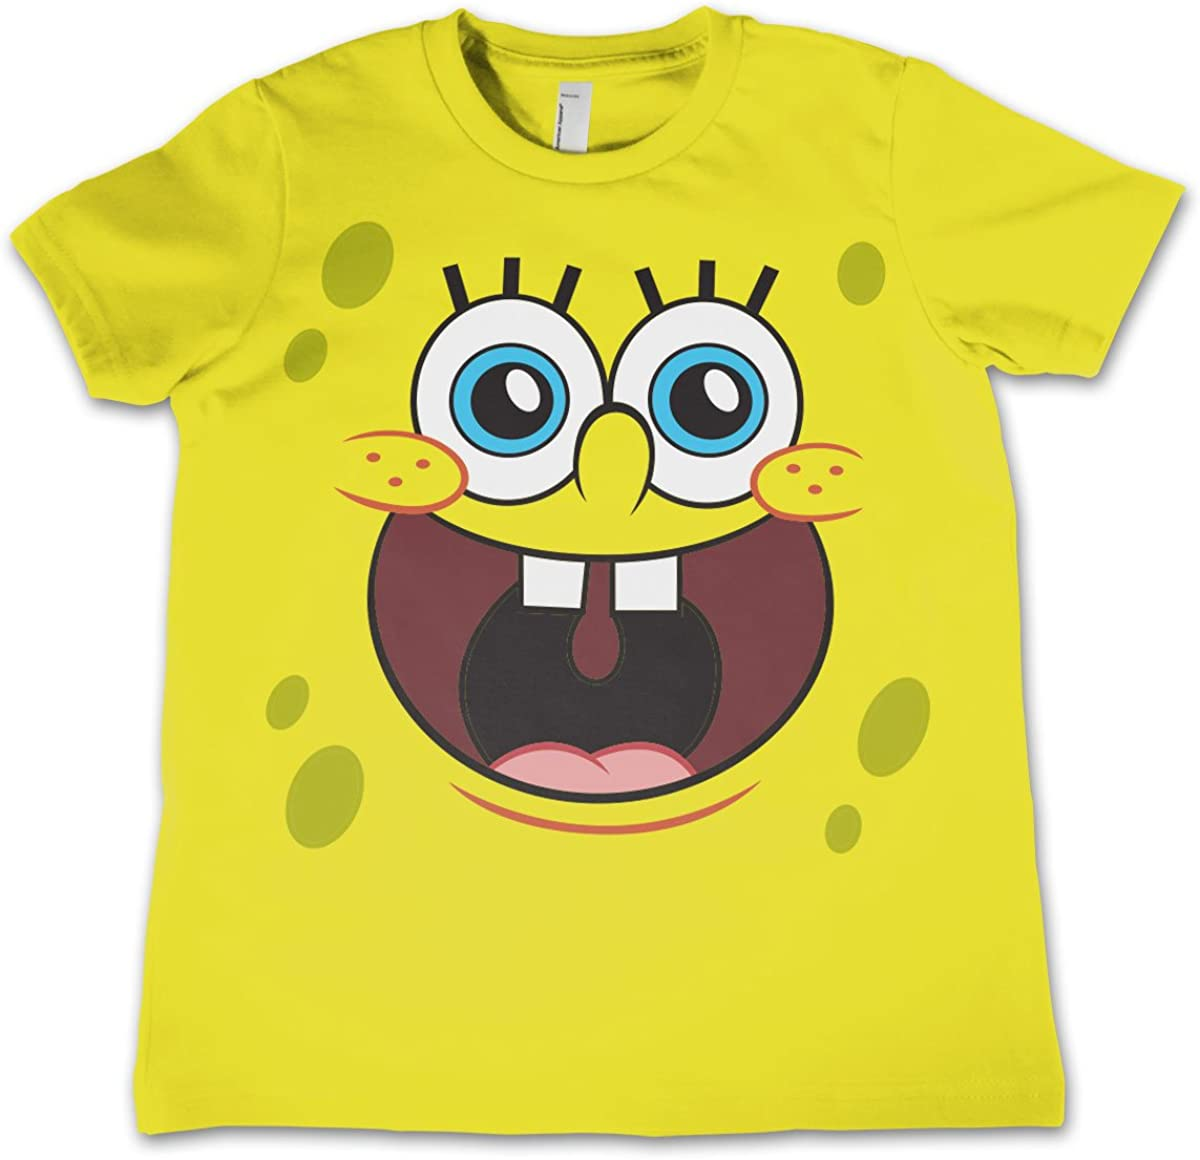 Sponge Happy Face Official Unisex Kids T Shirts Ages 3-12 Years